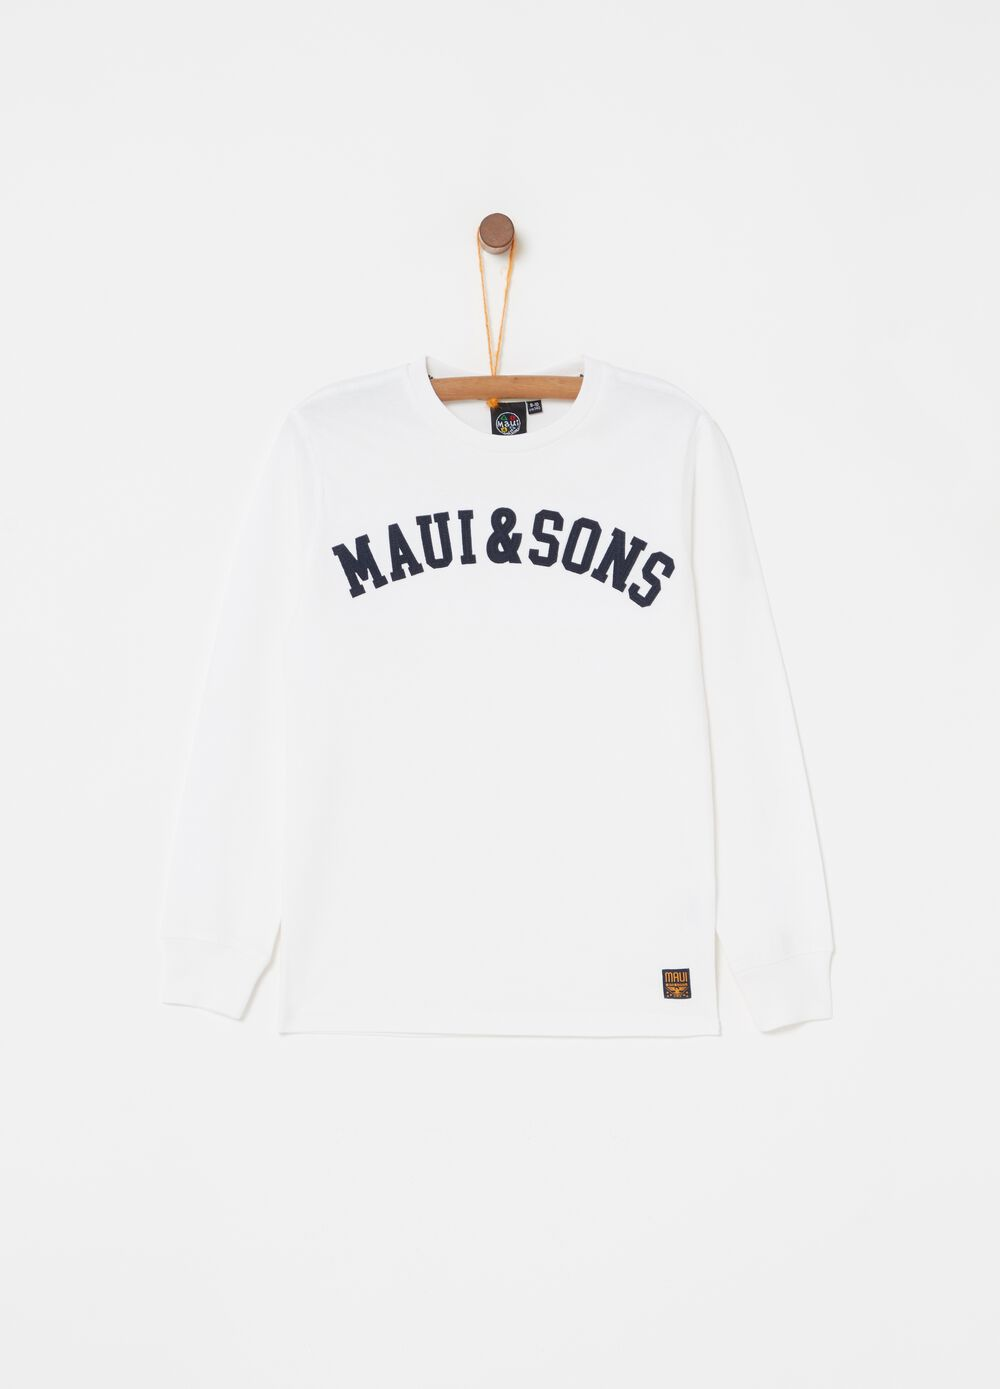 100% cotton T-shirt with Maui and Sons embroidery